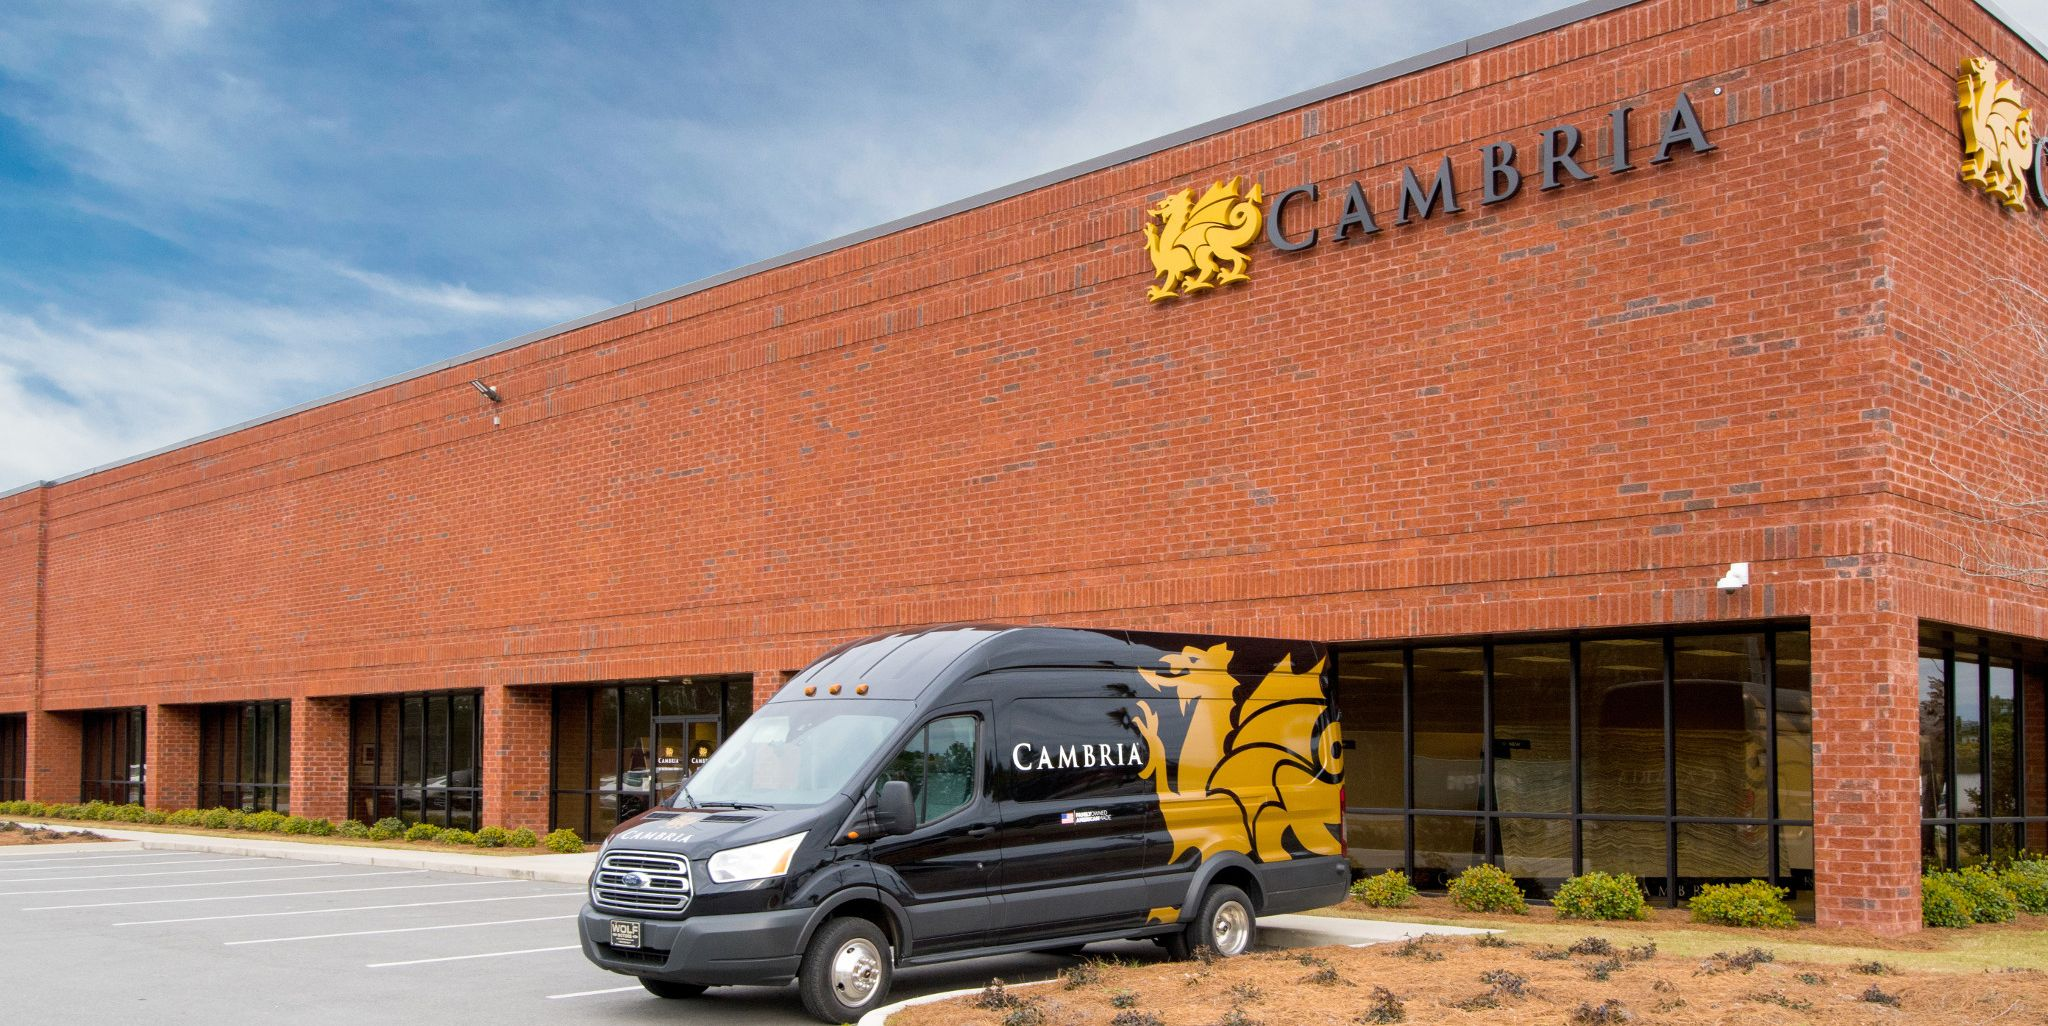 Cambria-DC-Savannah-Georgia-showroom